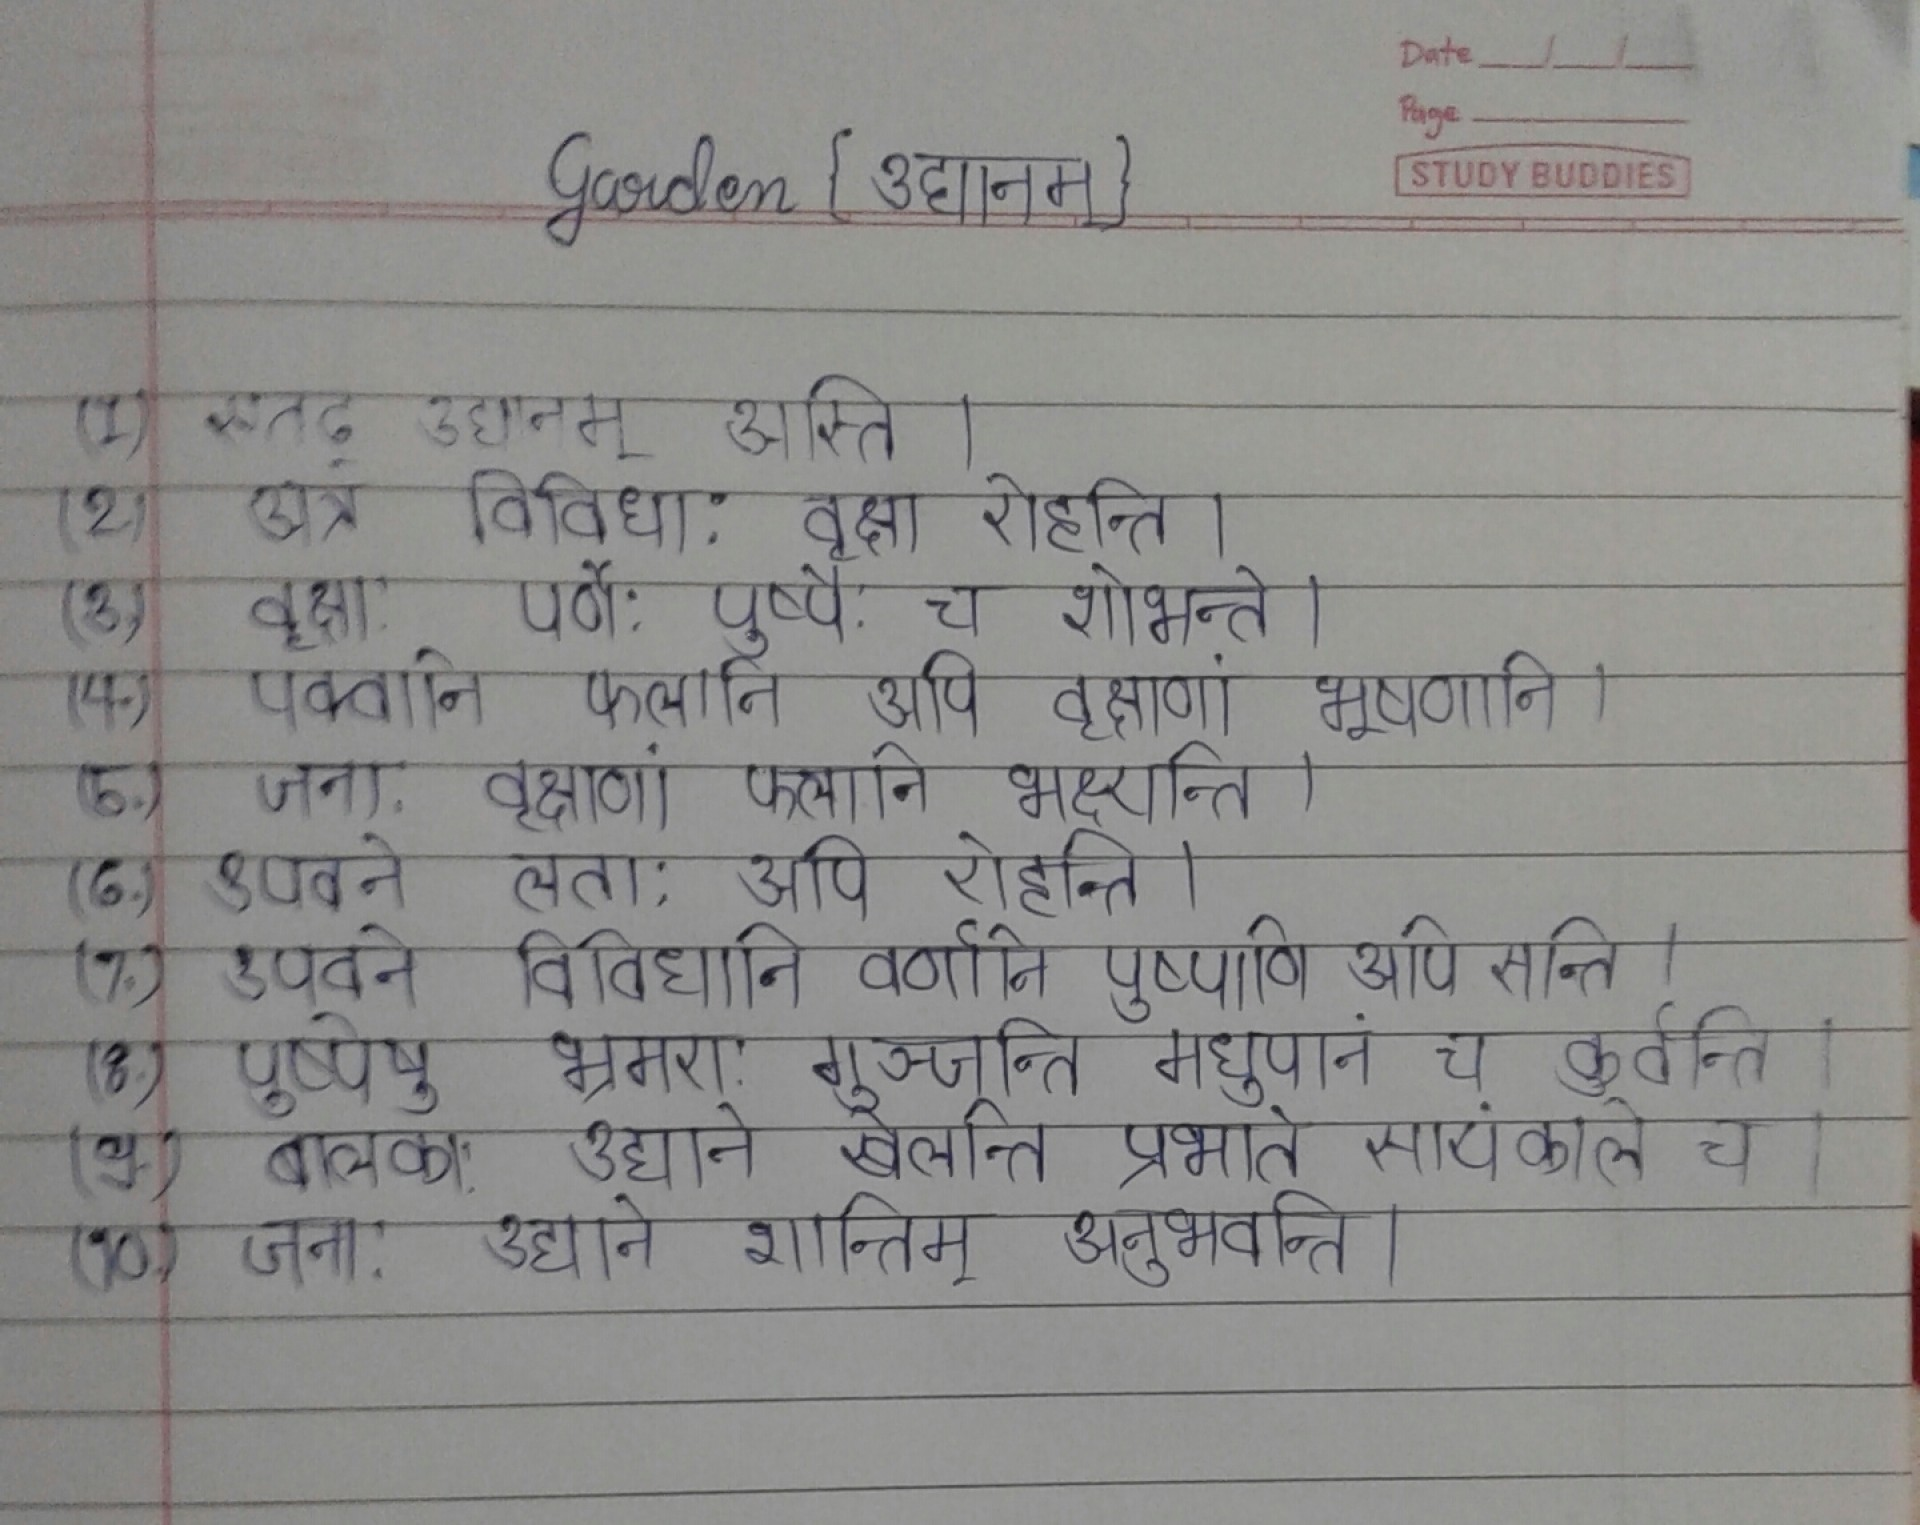 006 Essay Example On Stunning Garden Gardening By Henk Gerritsen In Sanskrit Language Hindi 1920